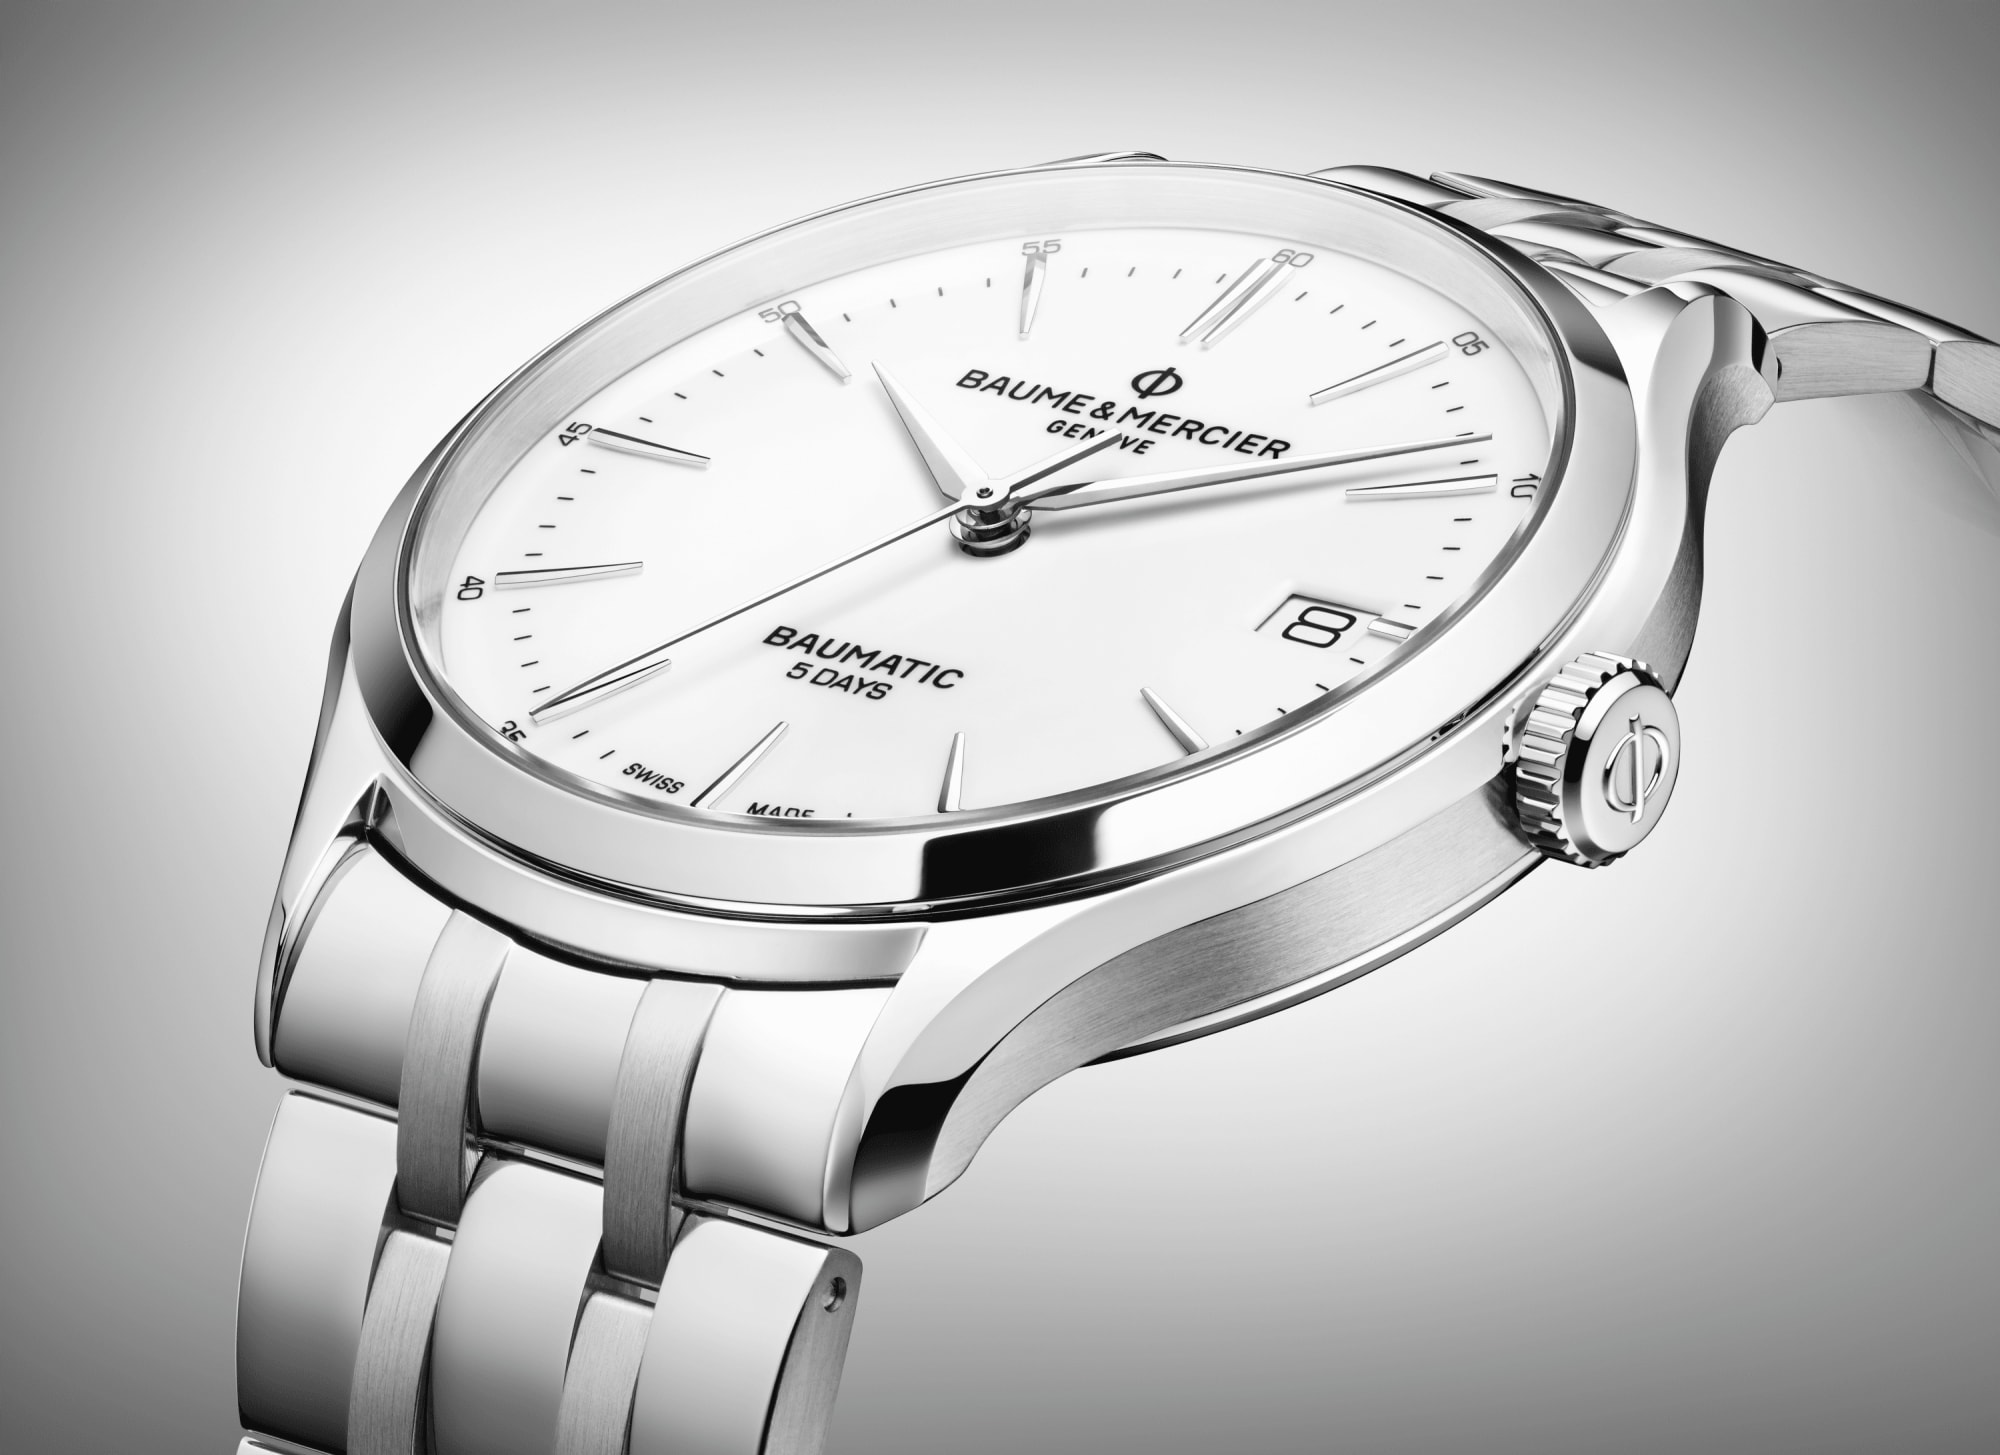 Clifton Baumatic 10400 Watch for men | Check Prices on Baume & Mercier Close-Up -